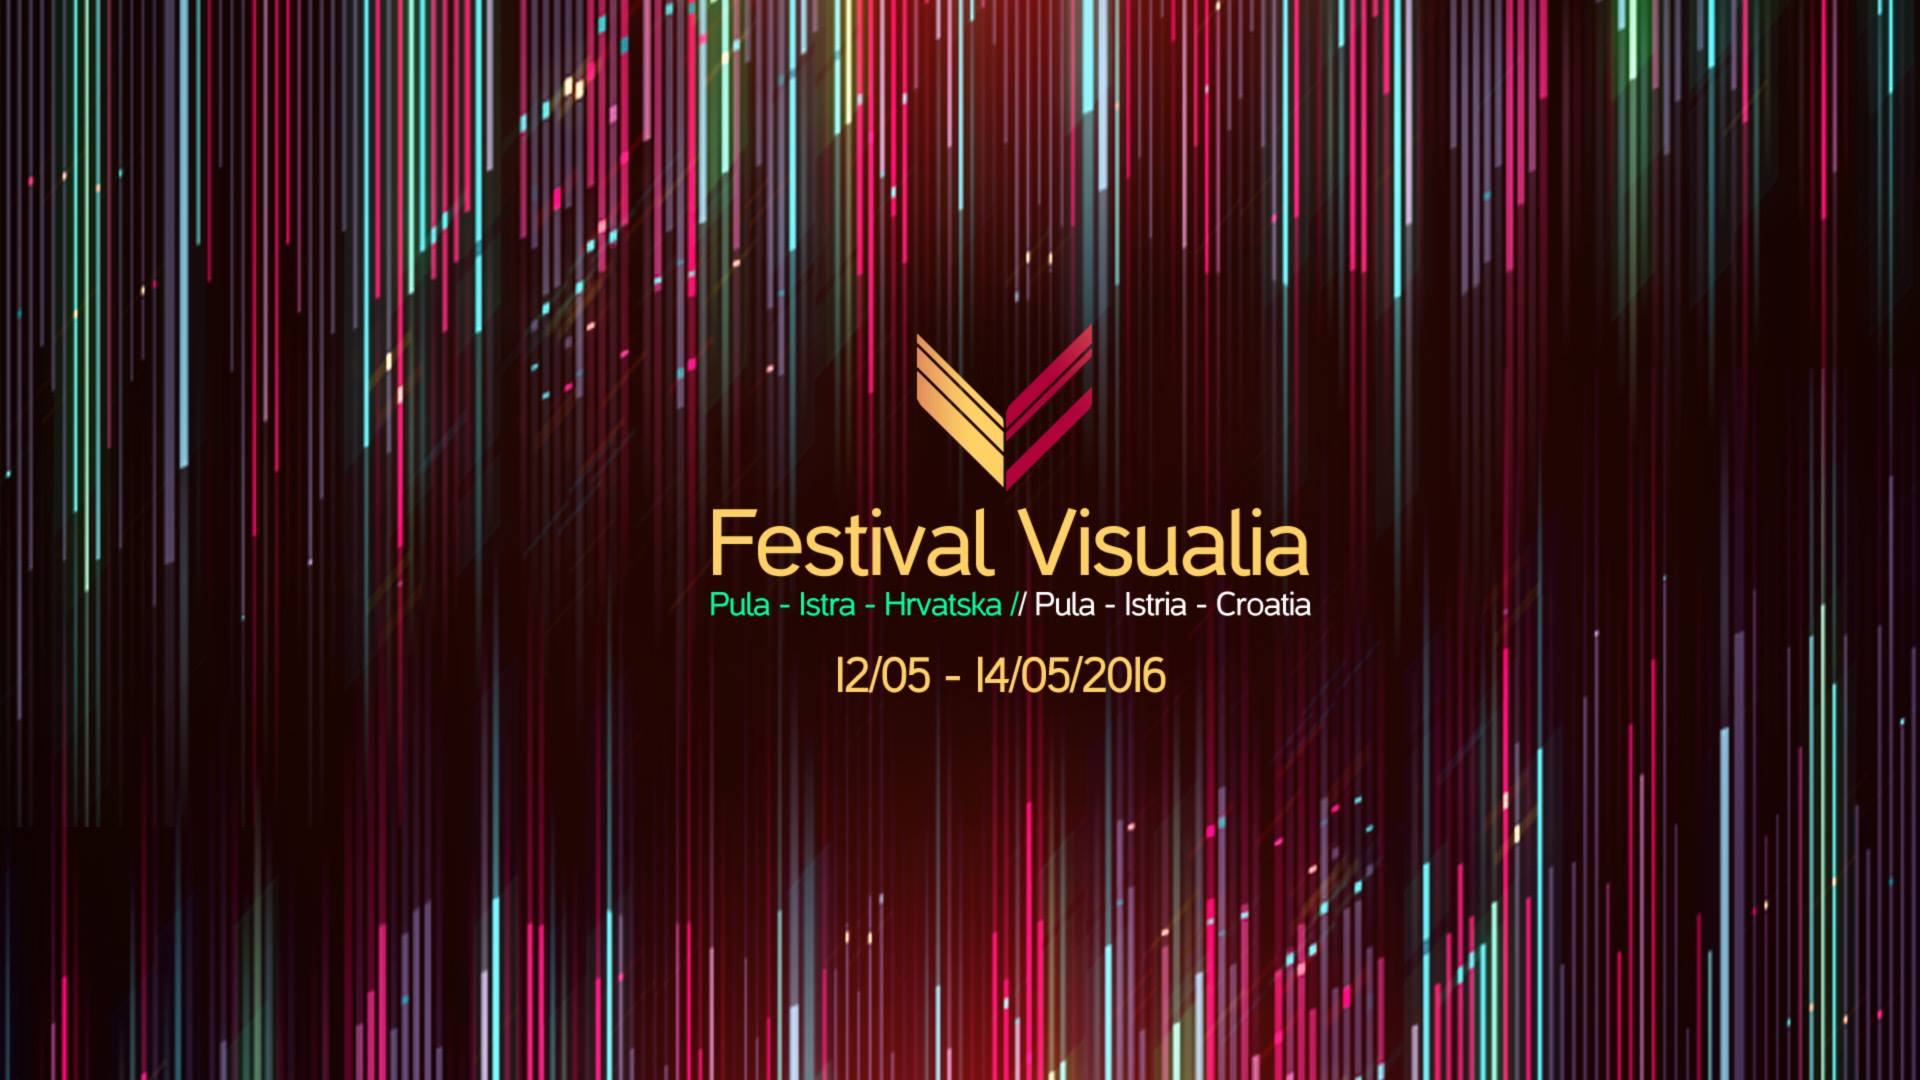 Waterlight graffiti est exposé au festival Visualia en Croatie du 12 au 14 mai 2016